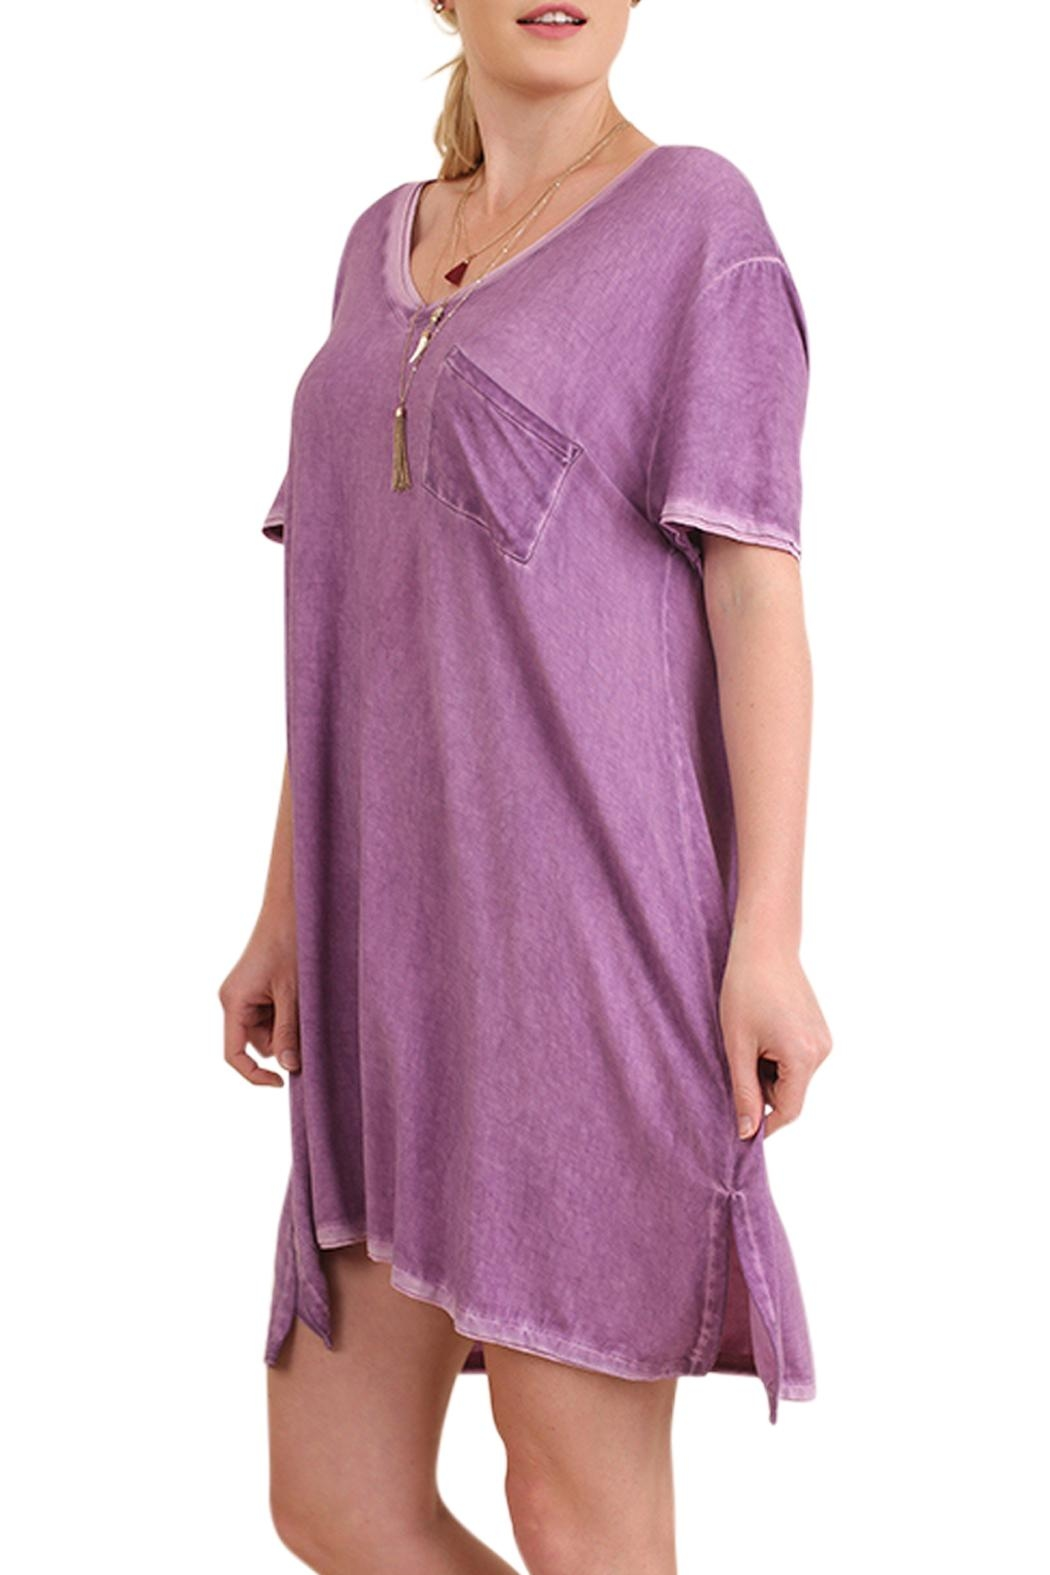 Umgee Usa Pocket T Shirt Dress From Missouri By The Sparkly Pig